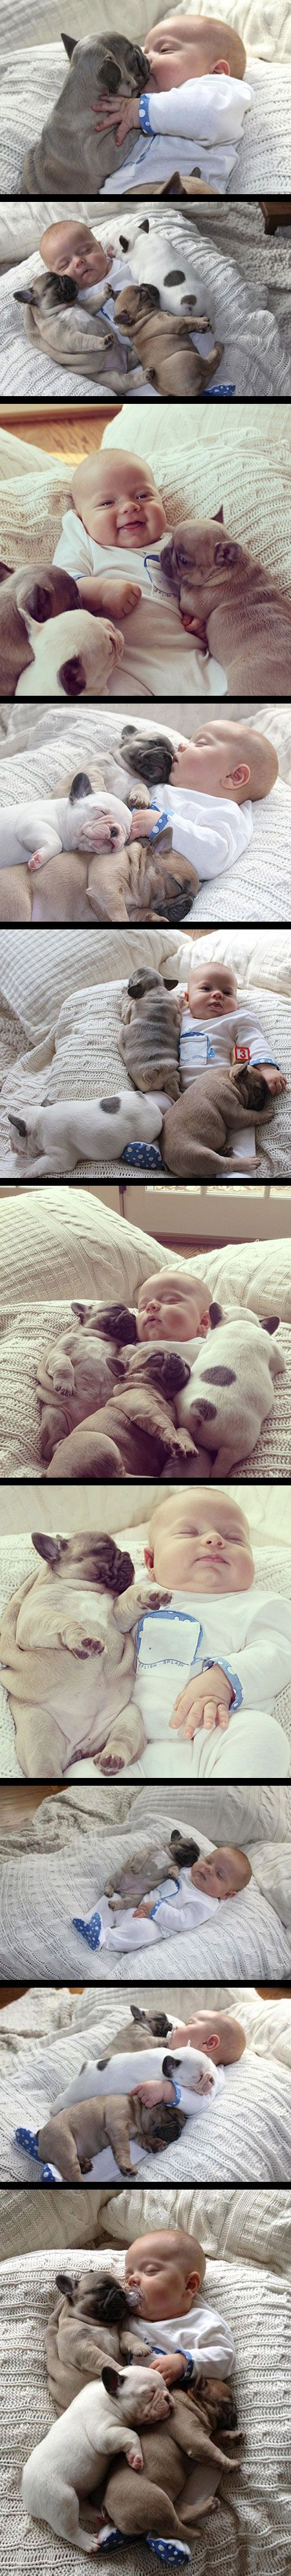 puppies & babies..what could be cuter?!